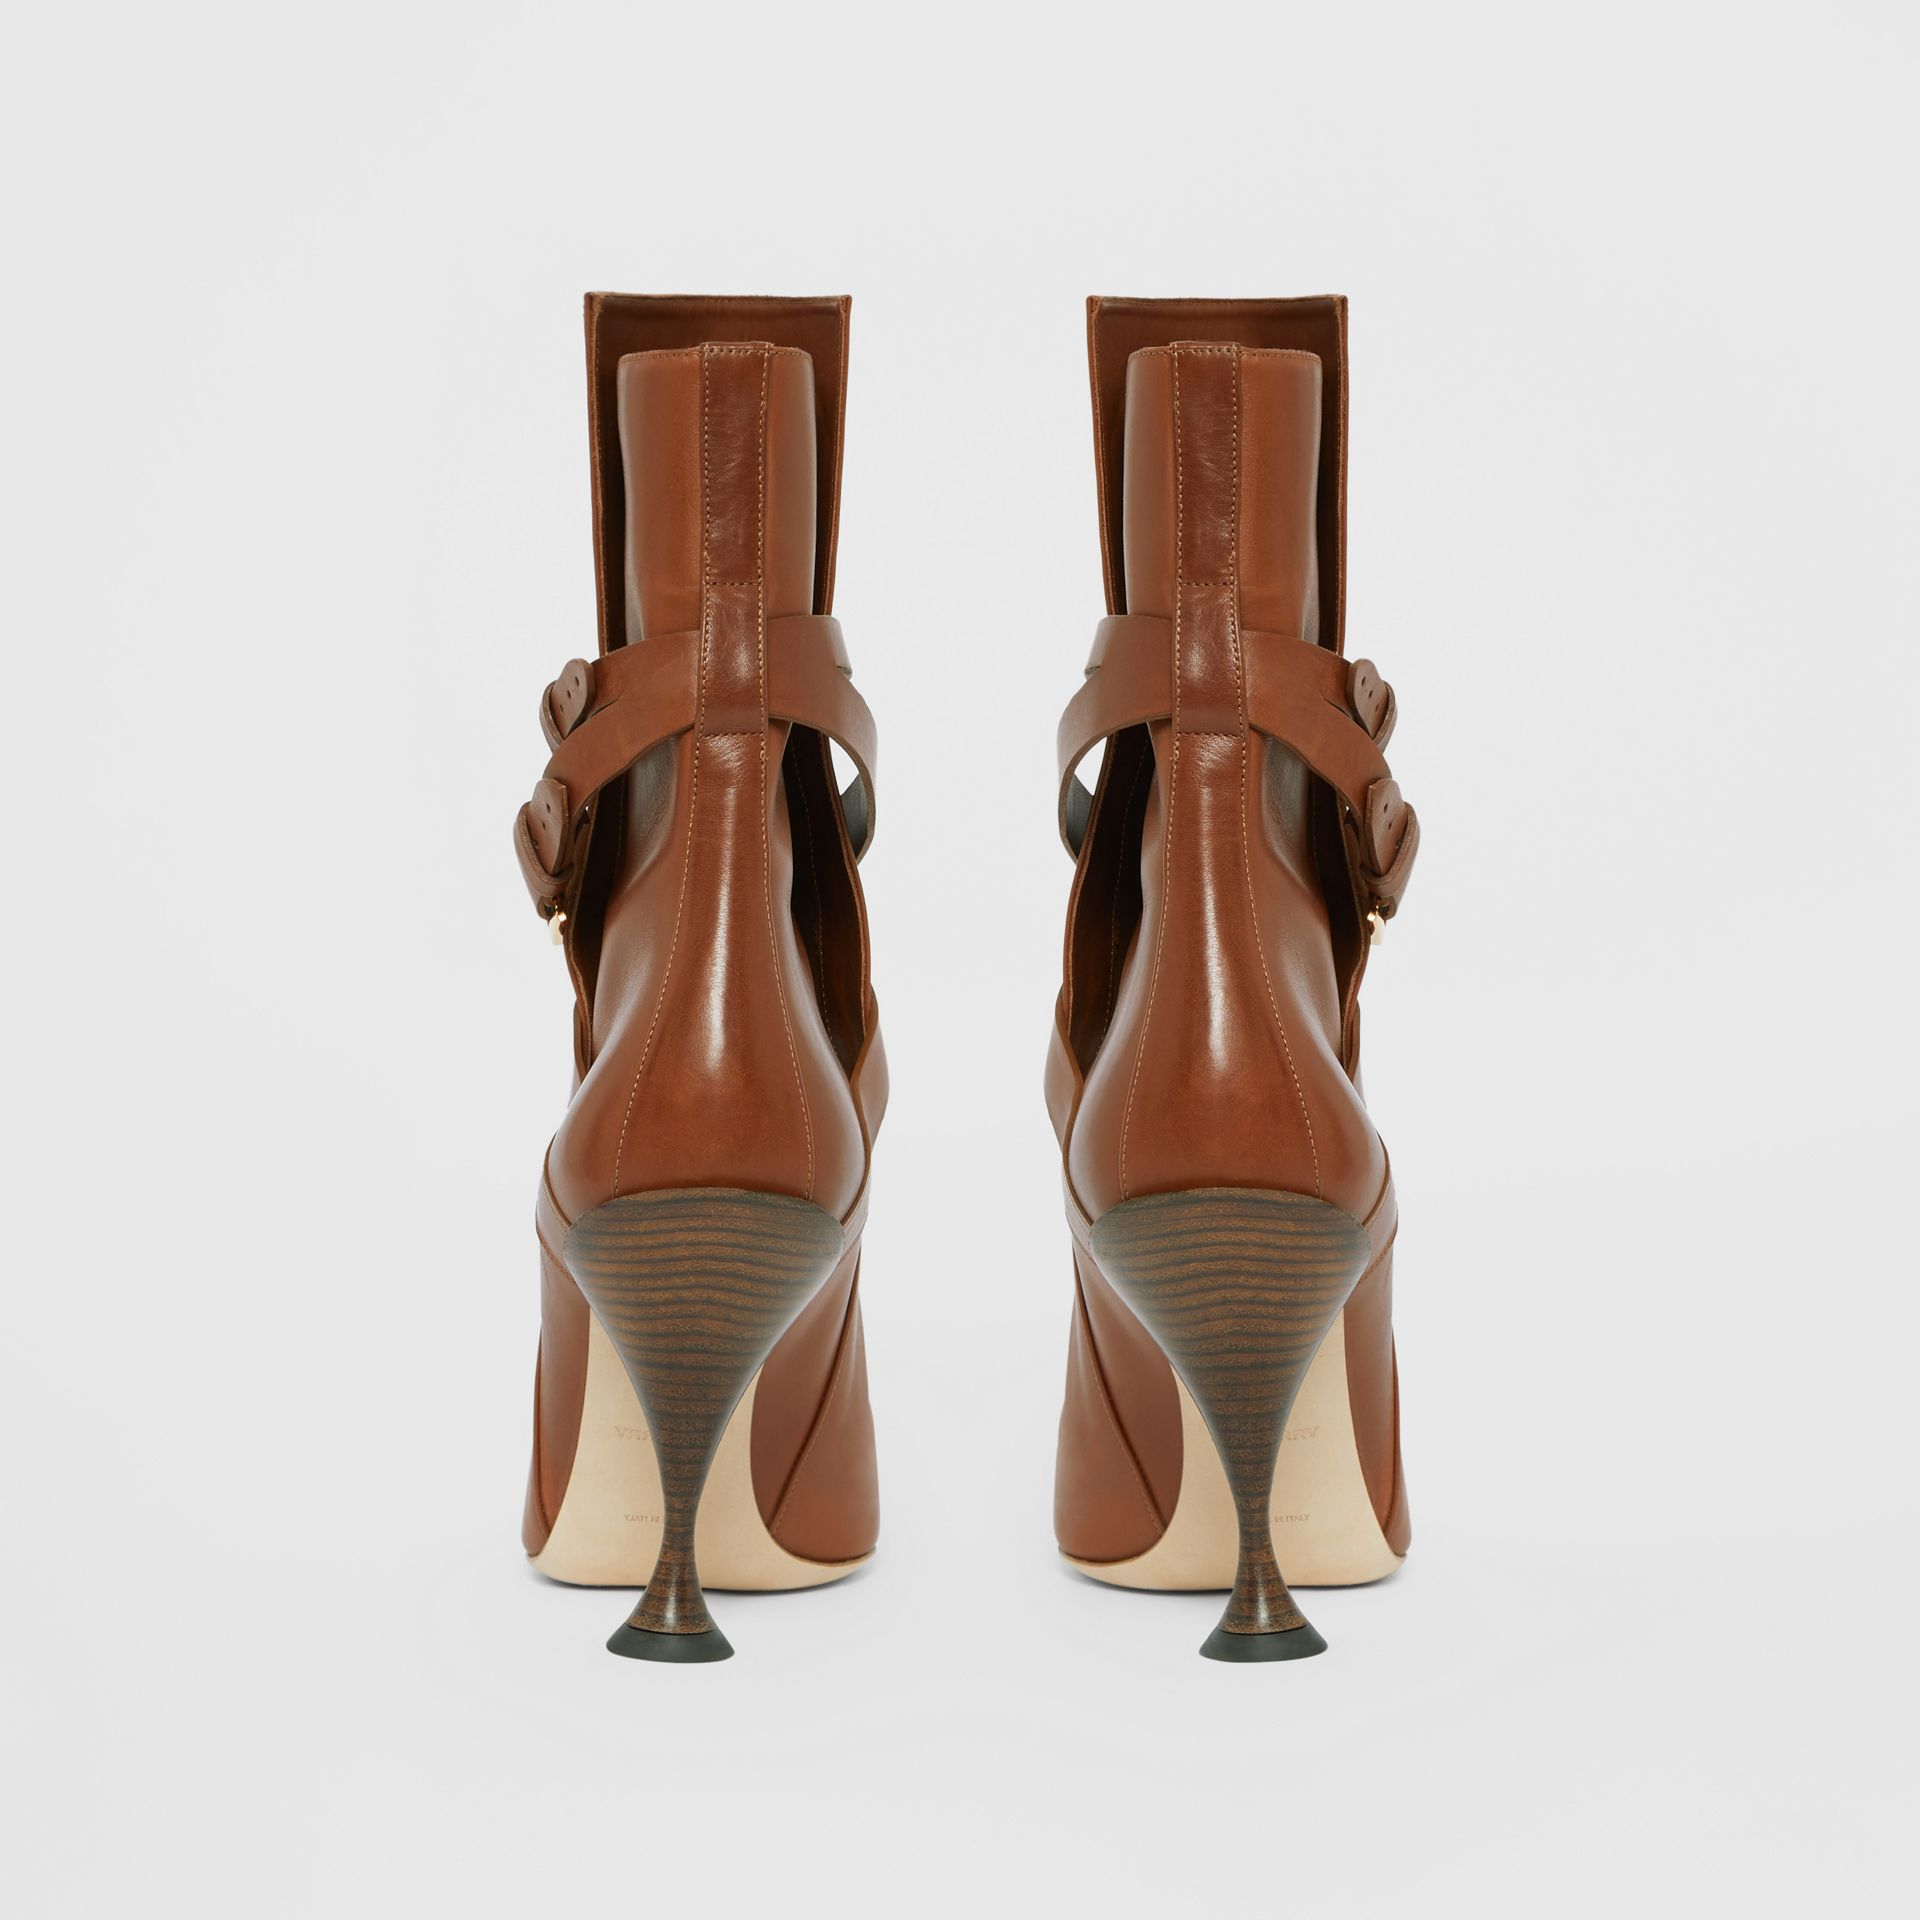 Strap Detail Leather Ankle Boots in Tan - Women | Burberry Hong Kong S.A.R - gallery image 4